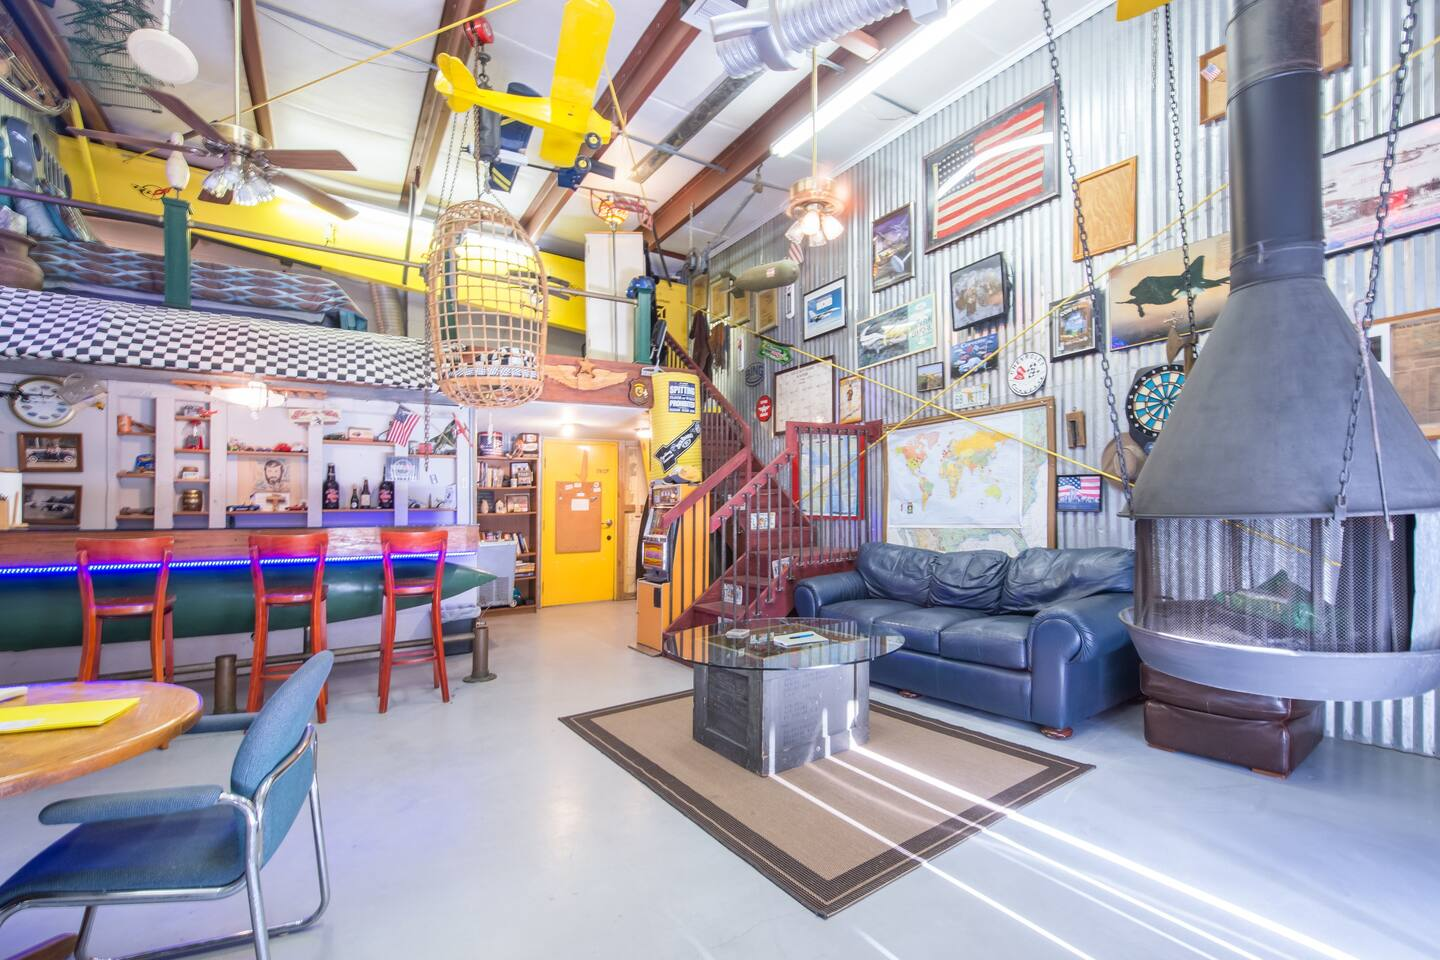 This Mancave is in an airplane glider is one of the best USA Airbnbs